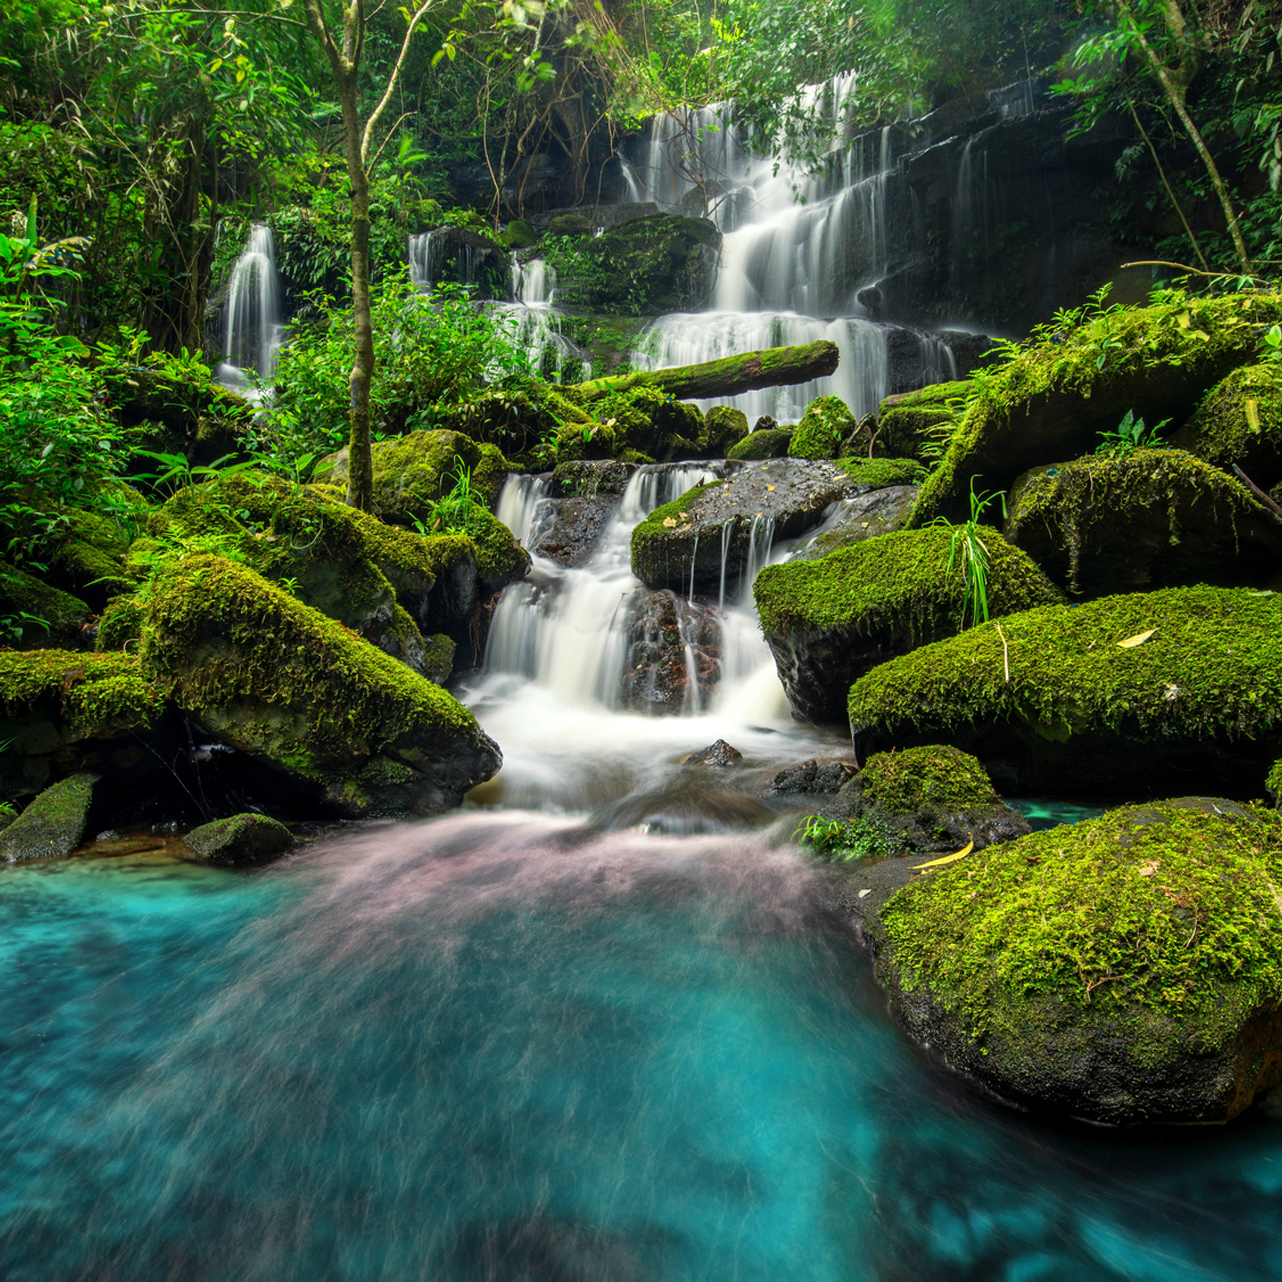 Waterfalls in lush forest setting